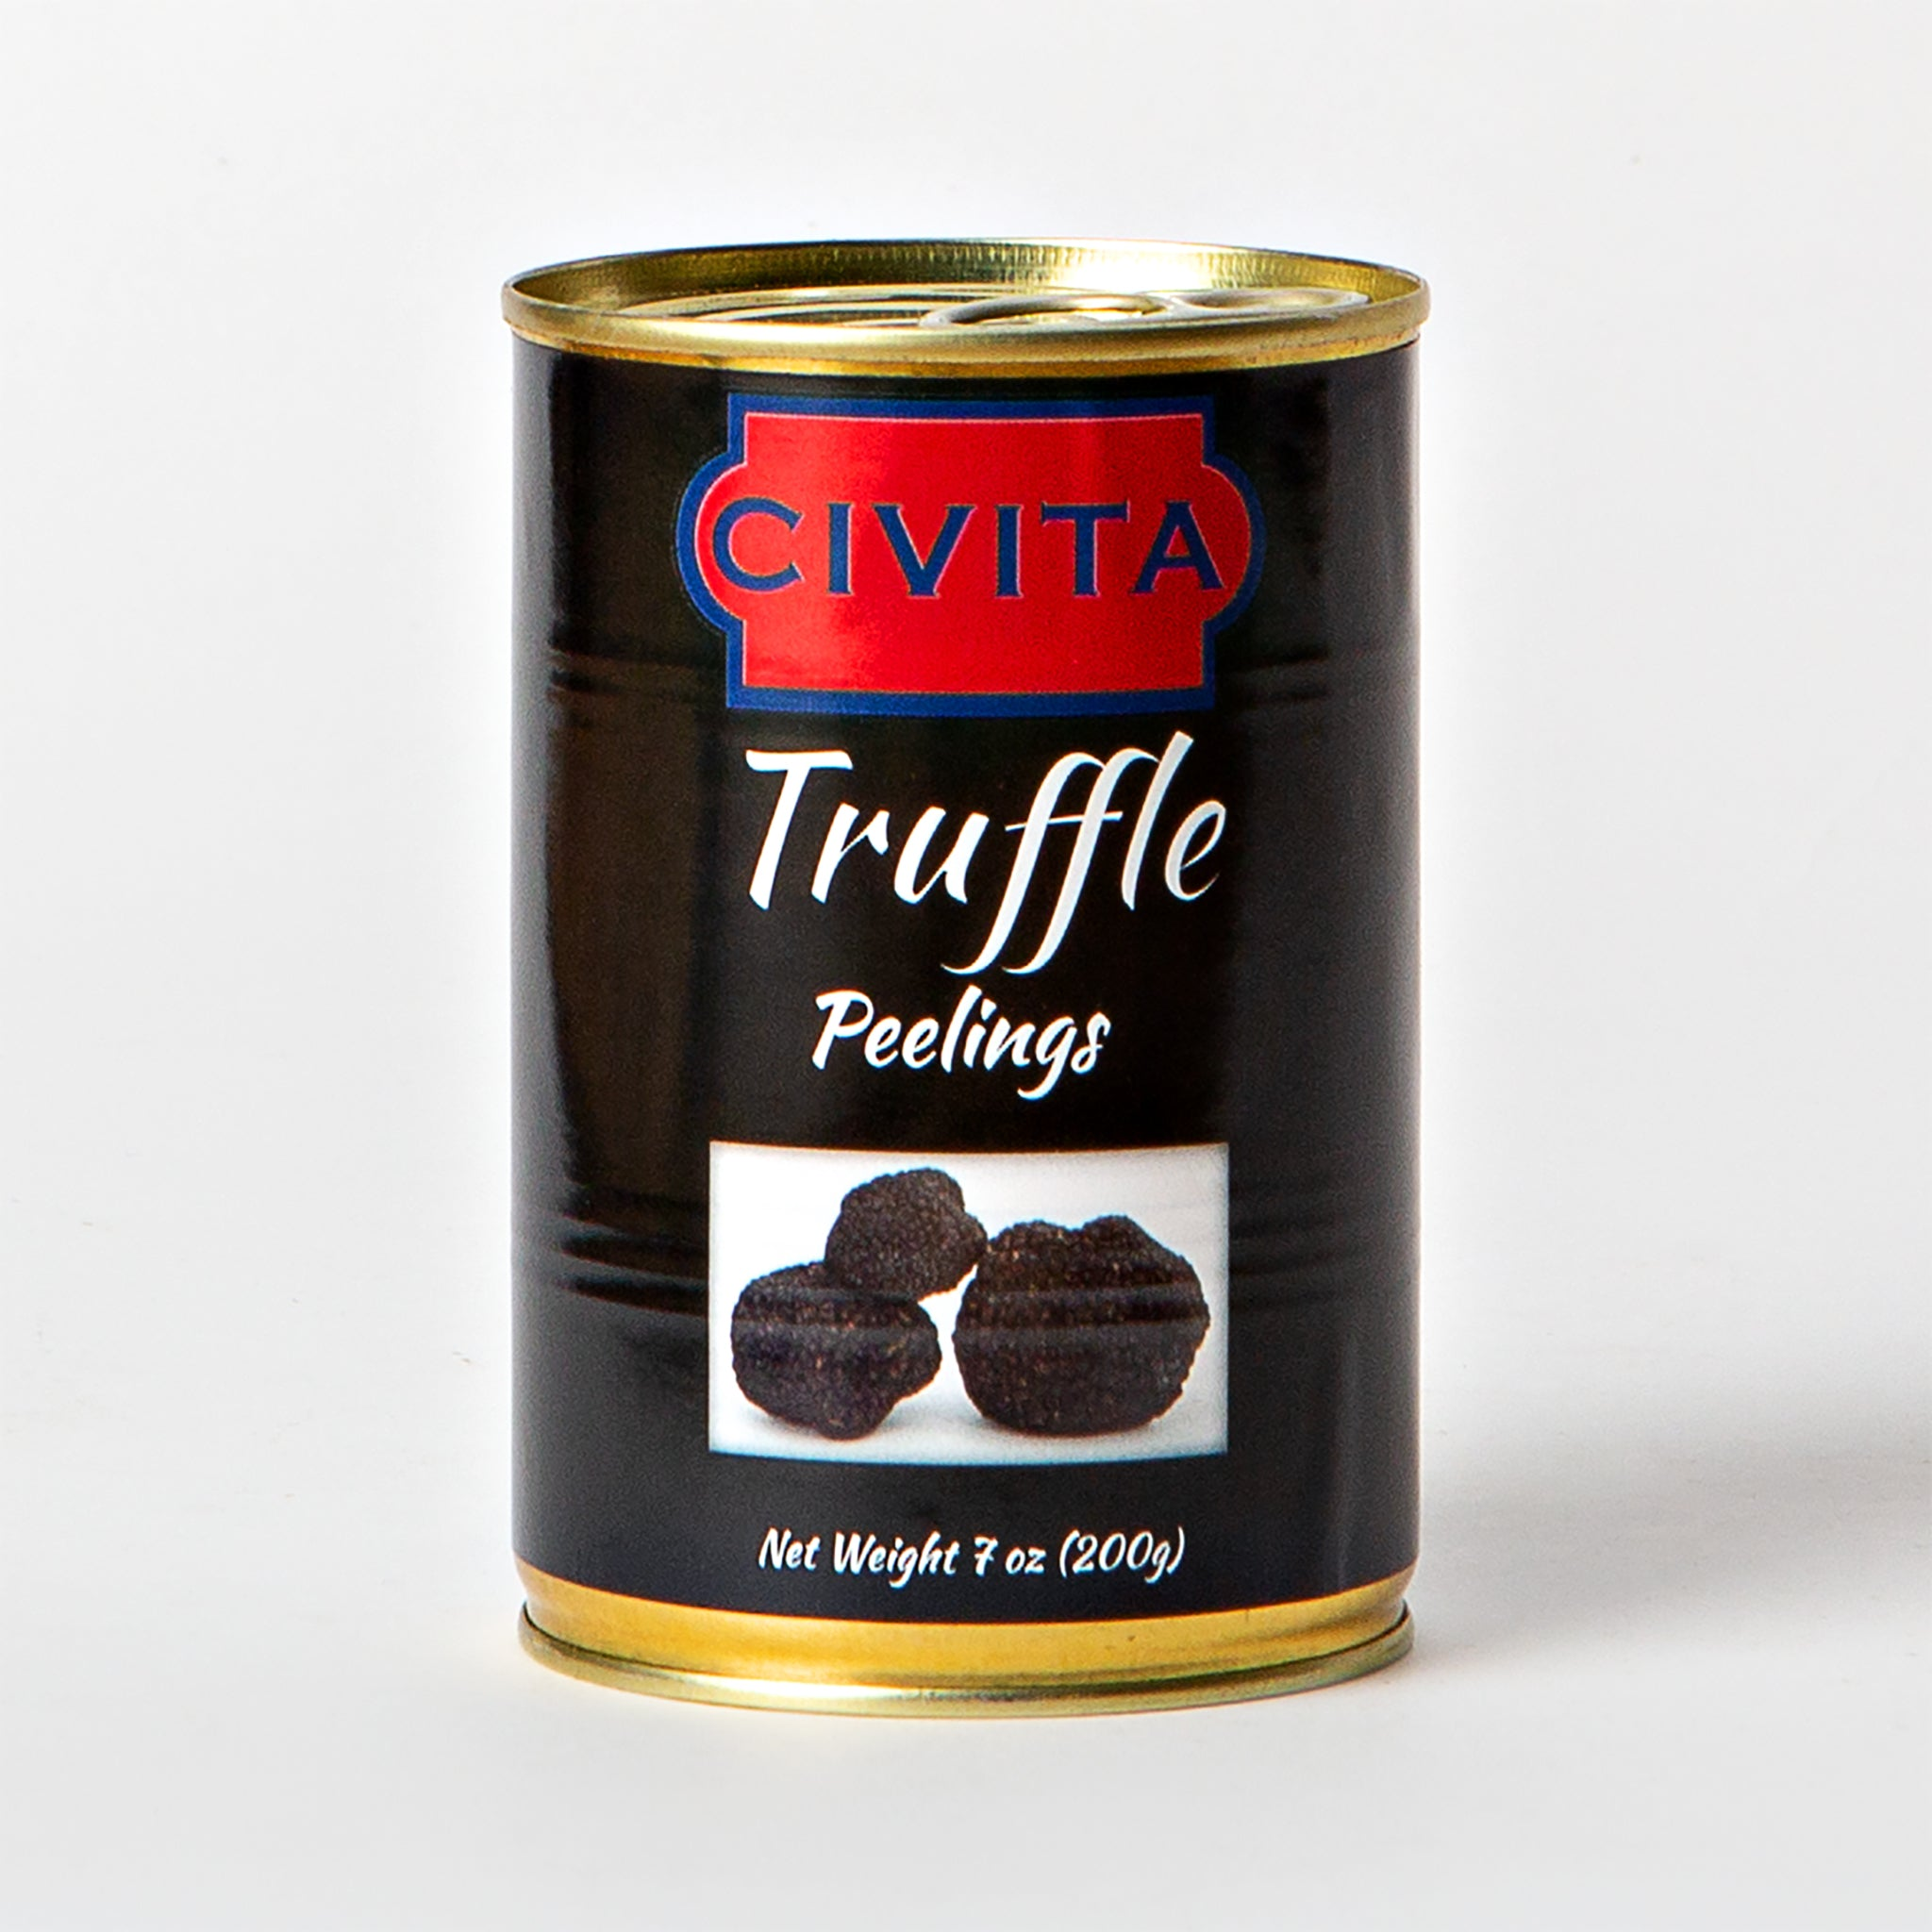 Civita Truffle Peelings